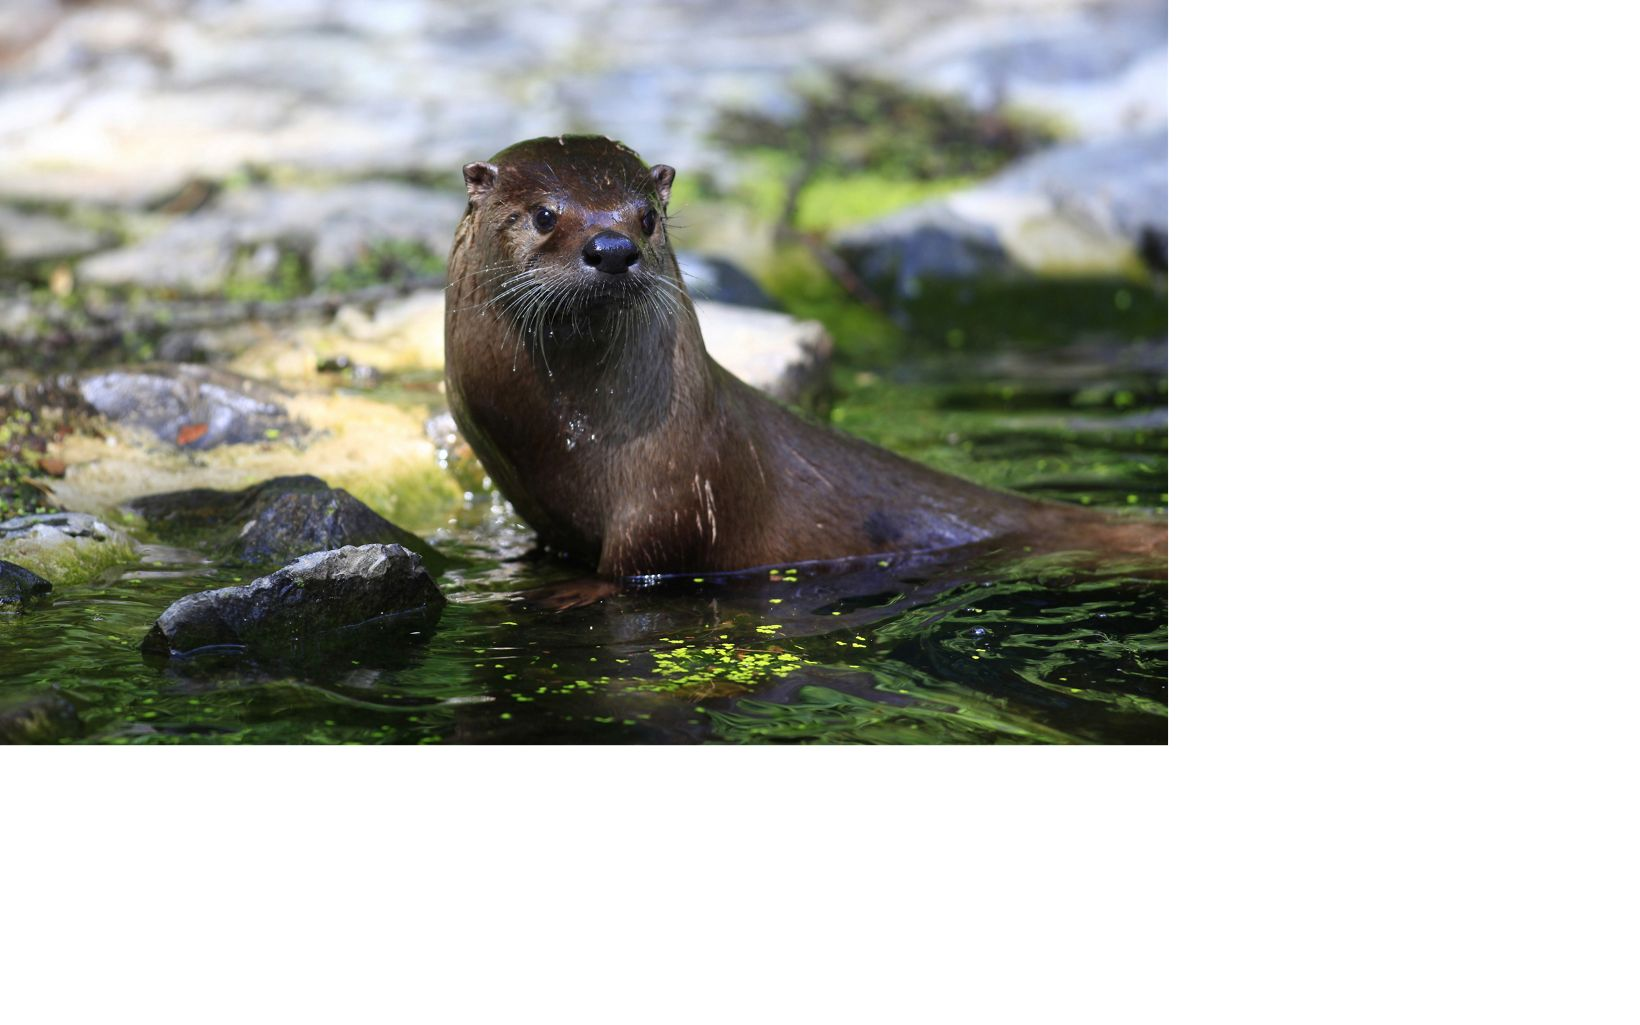 An otter is caught emerging from the river water.